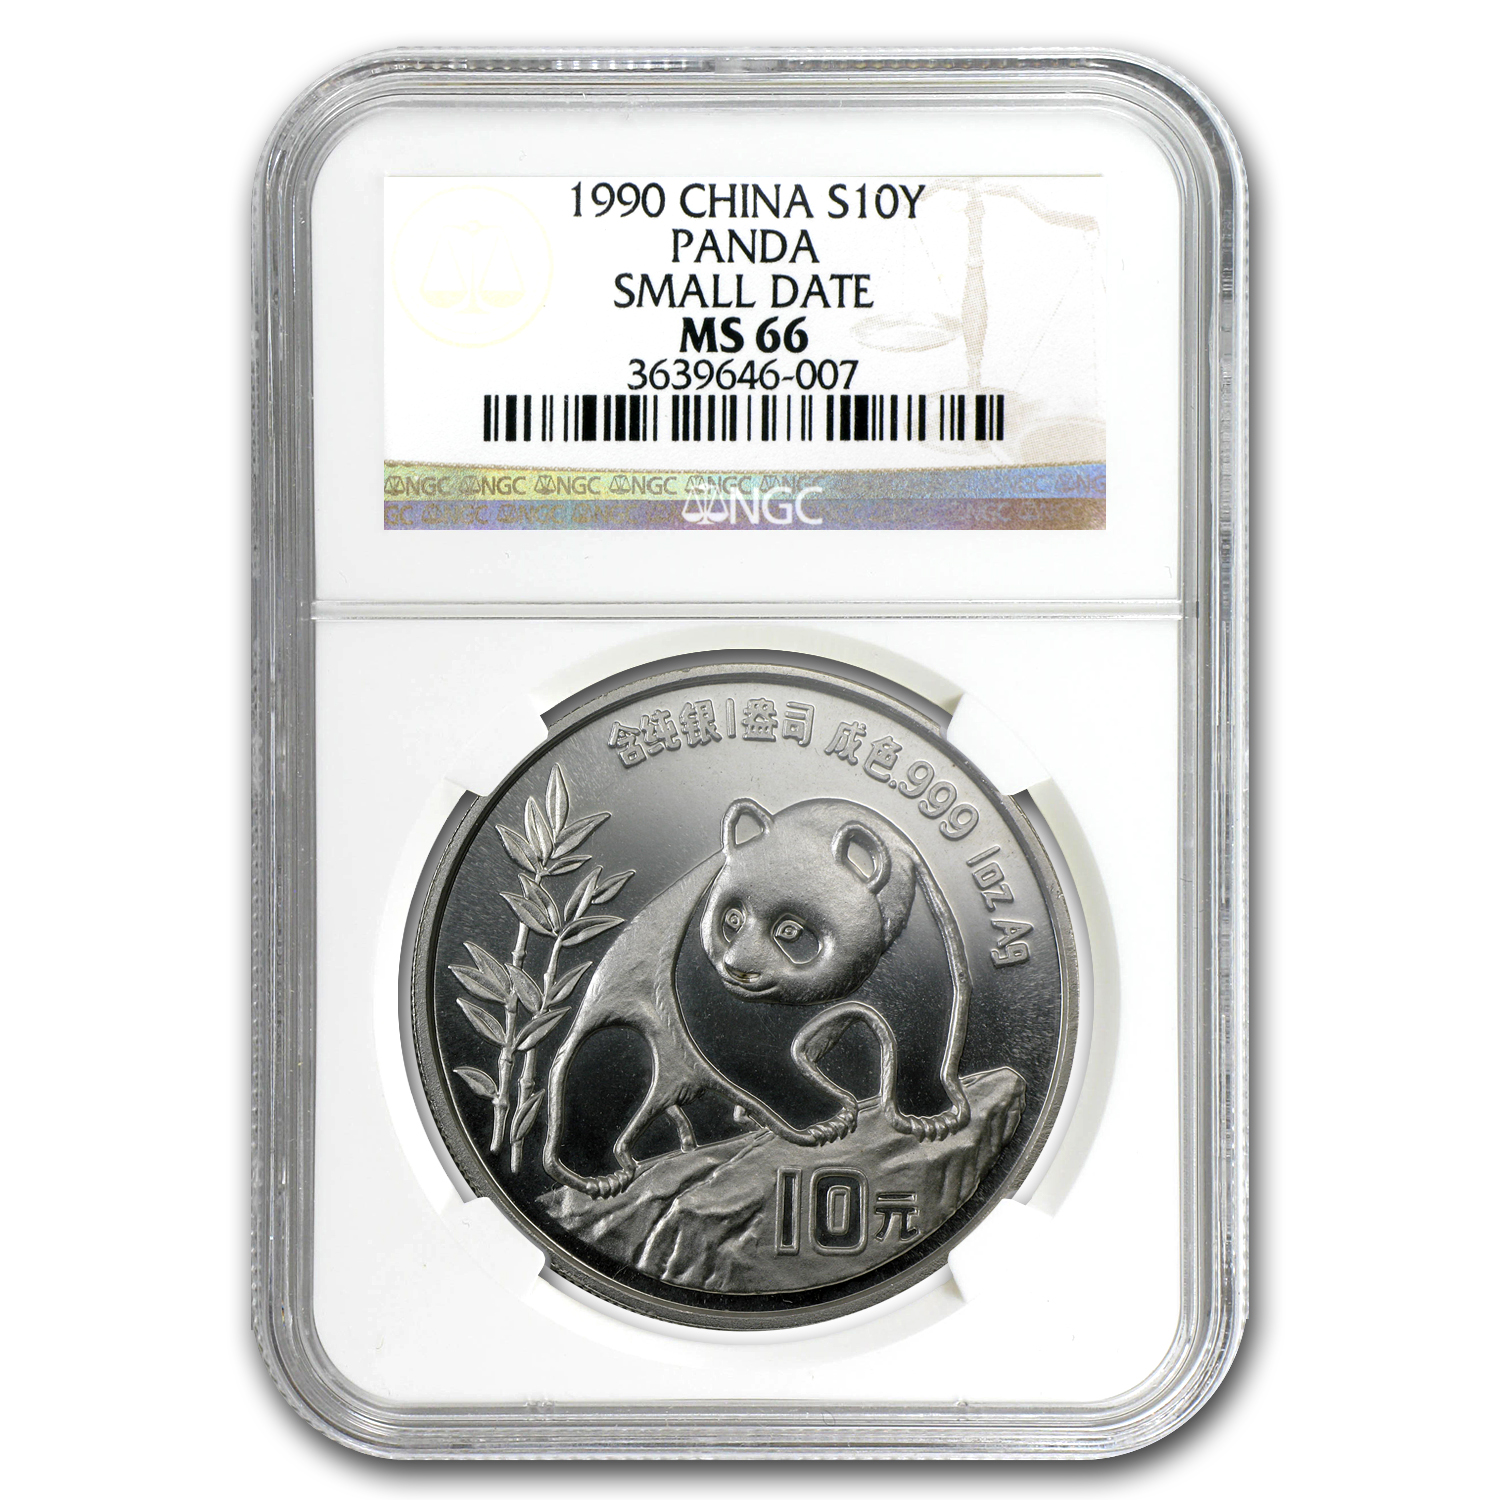 1990 China 1 oz Silver Panda MS-66 NGC (Small Date)